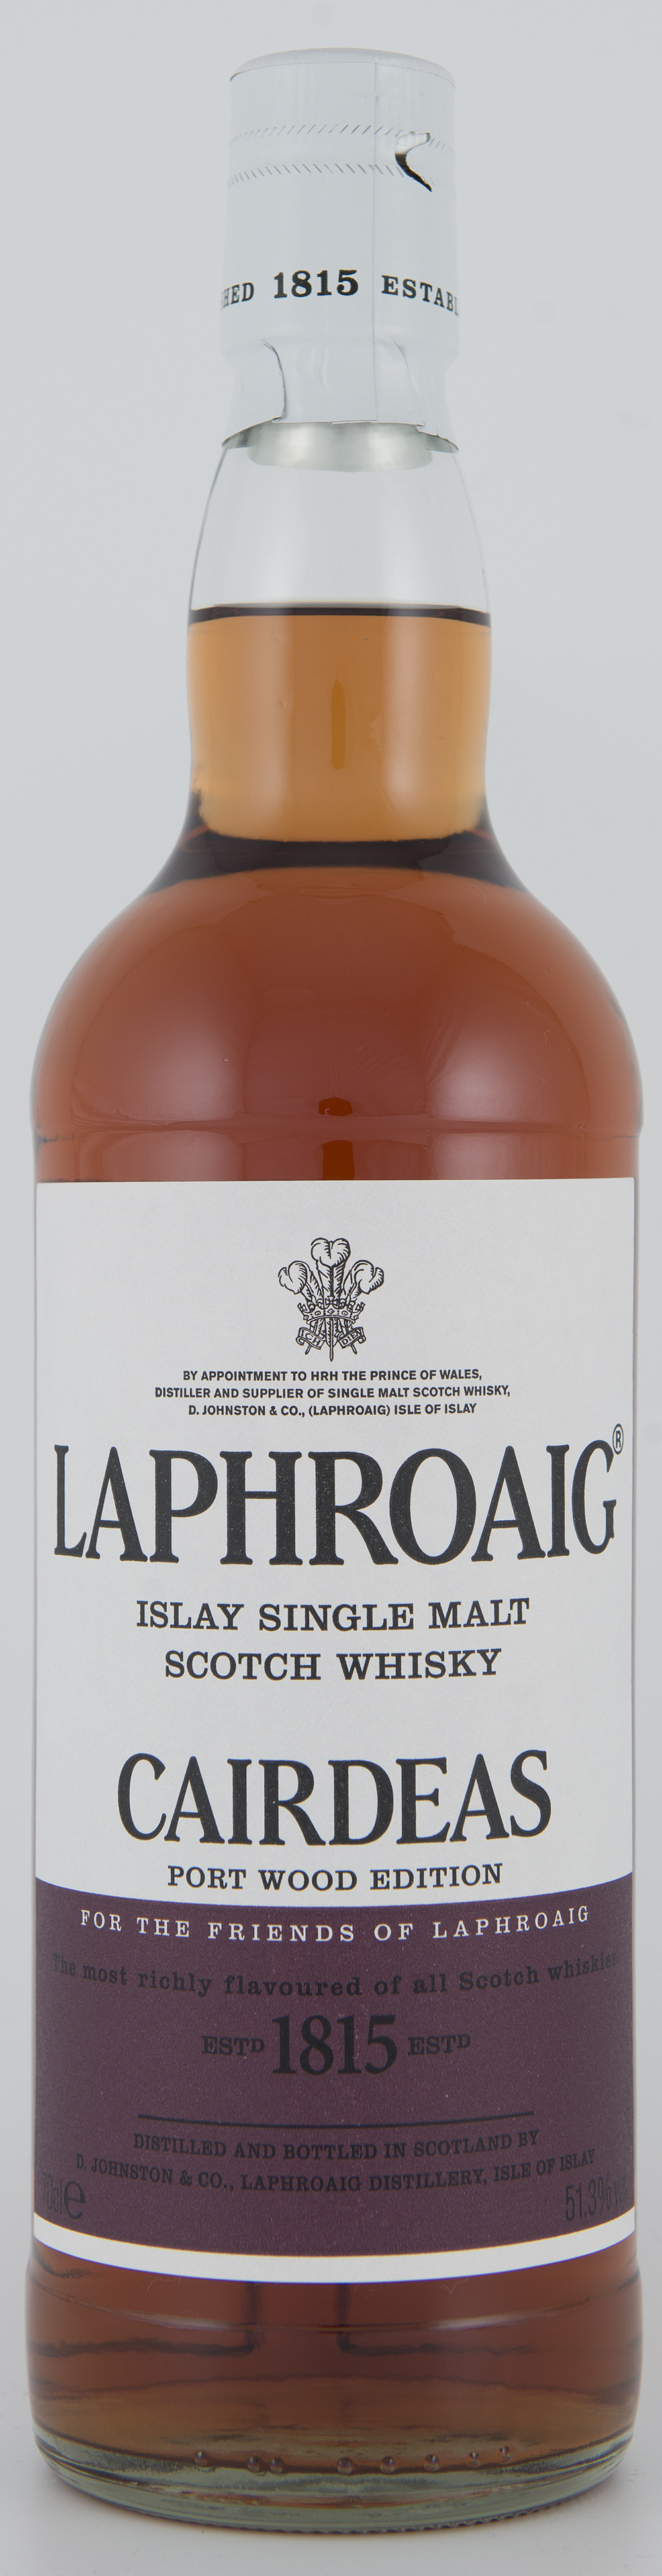 Billede: DSC_3218 Laphroaig Cairdeas Port Wood Edition (Feis Isle 2013) - bottle front.jpg